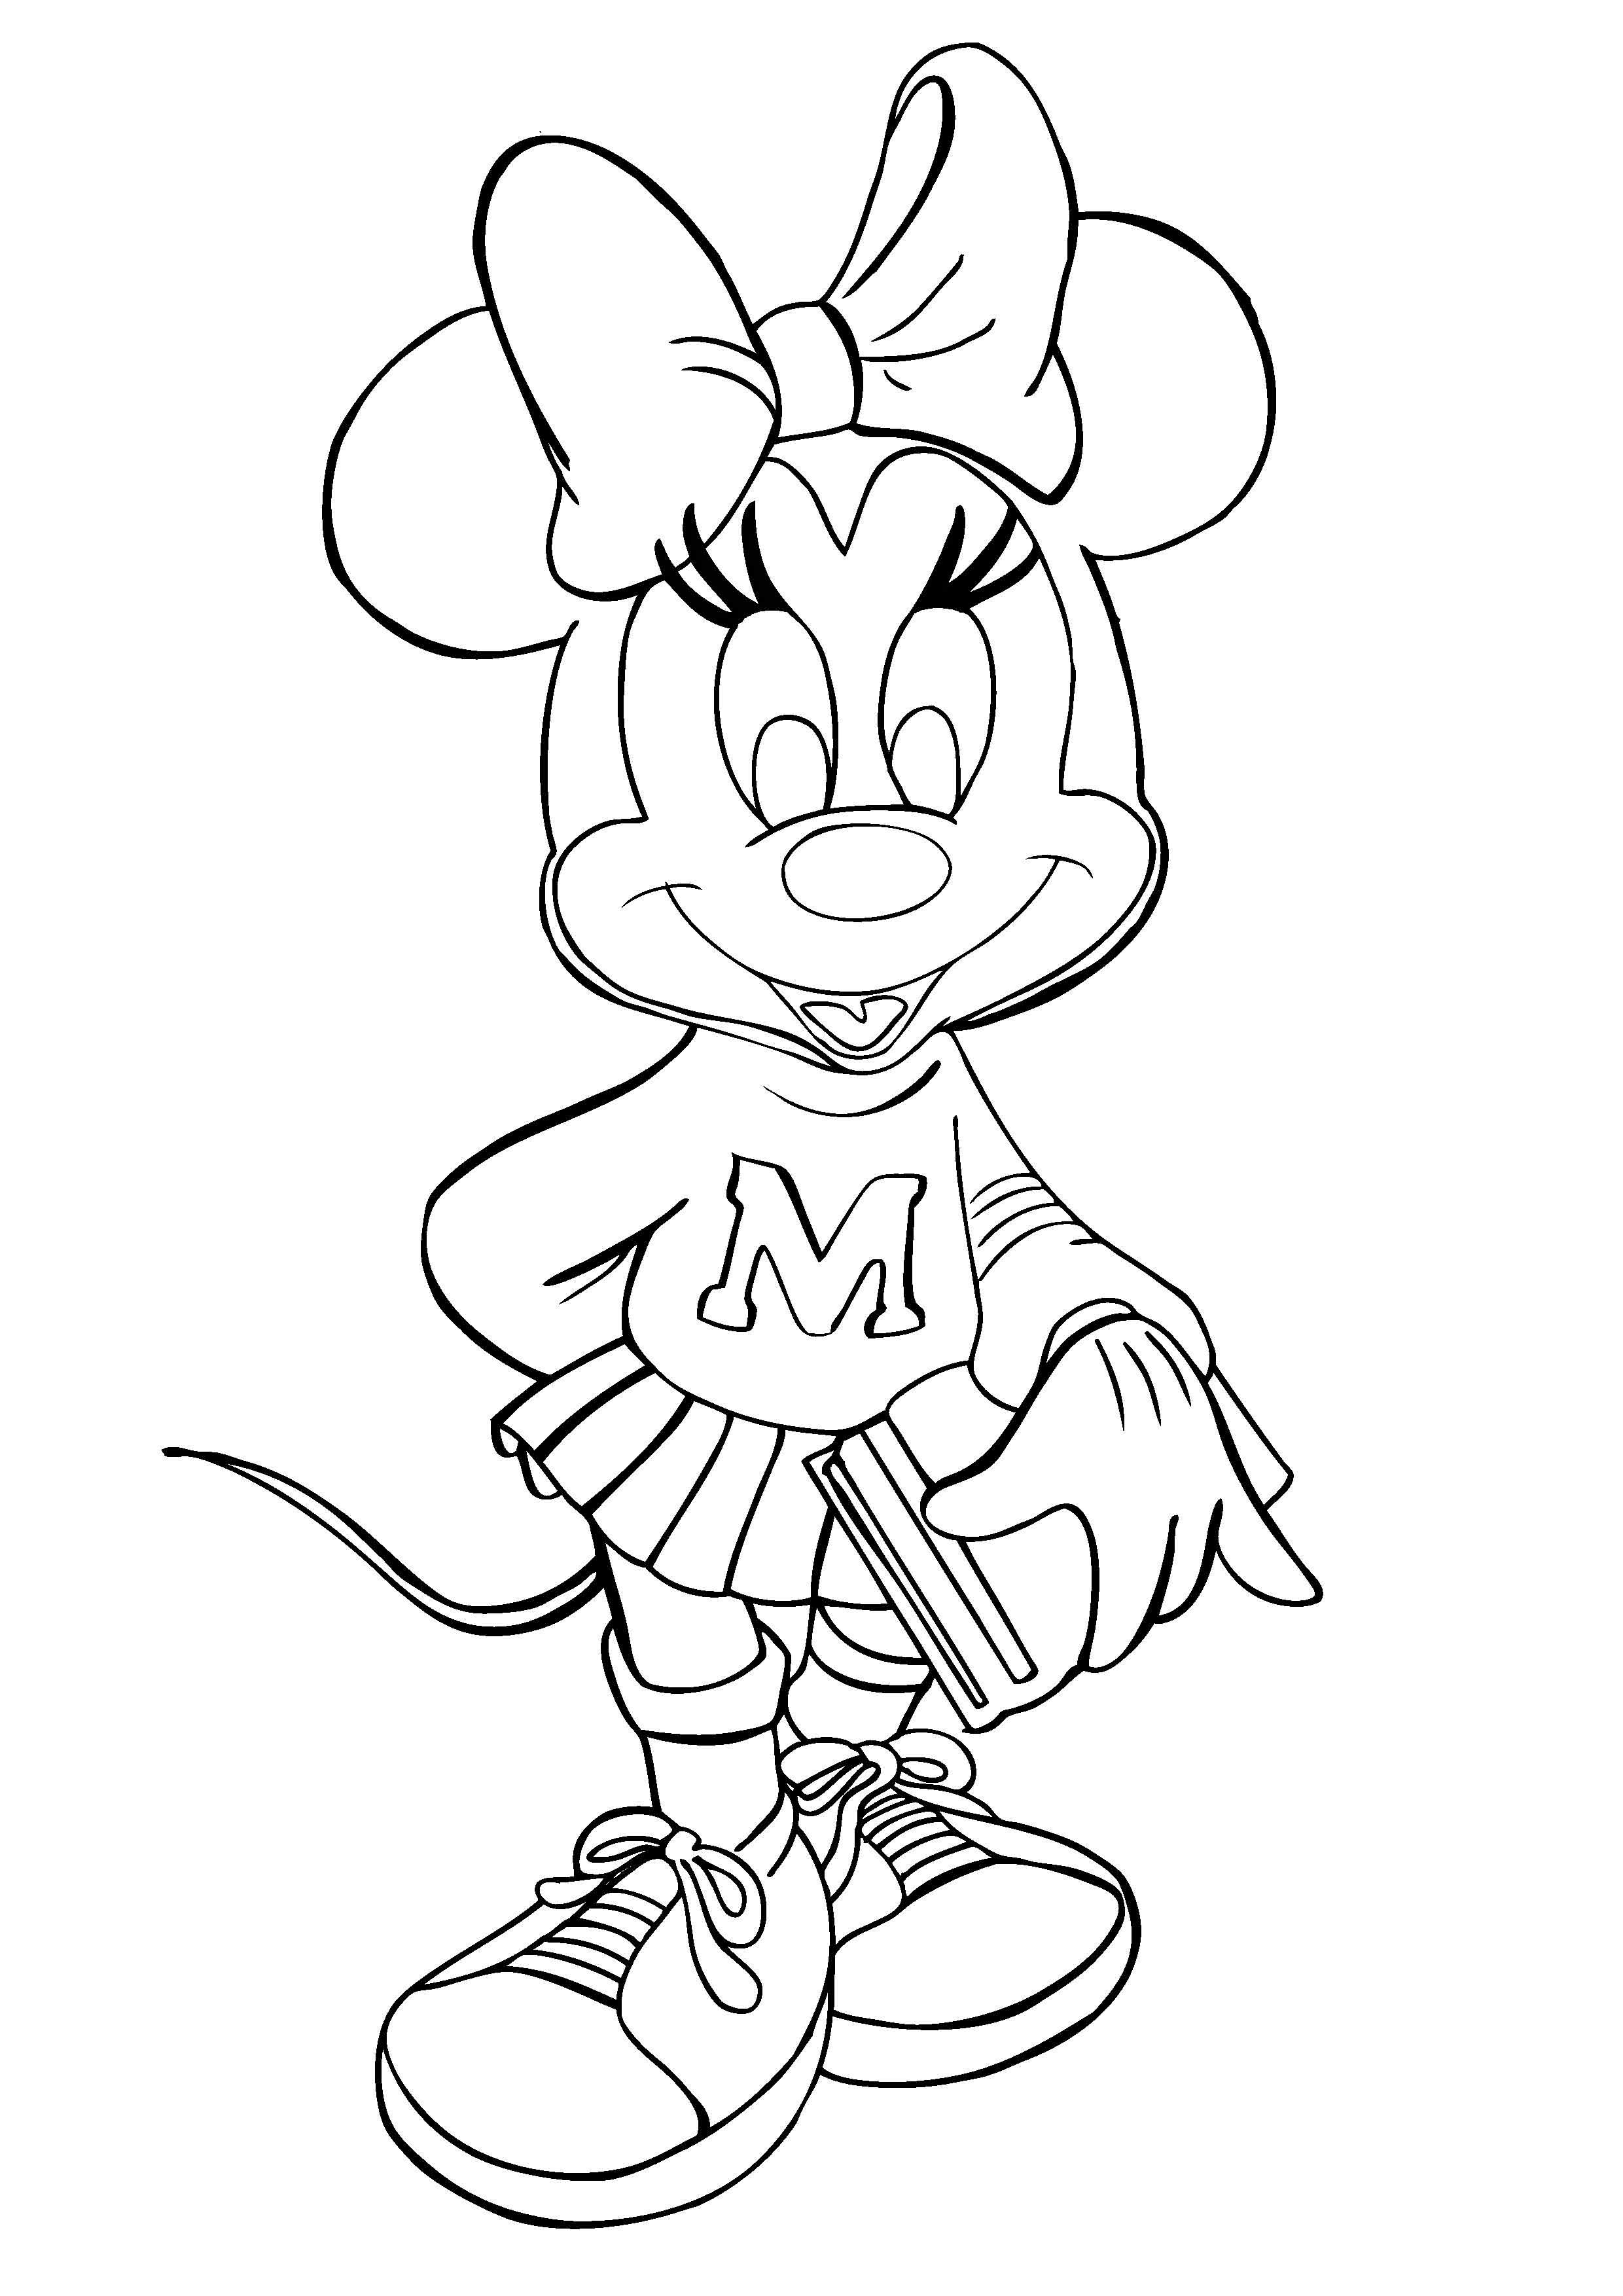 free minnie mouse coloring pages free printable minnie mouse coloring pages for kids pages free mouse minnie coloring